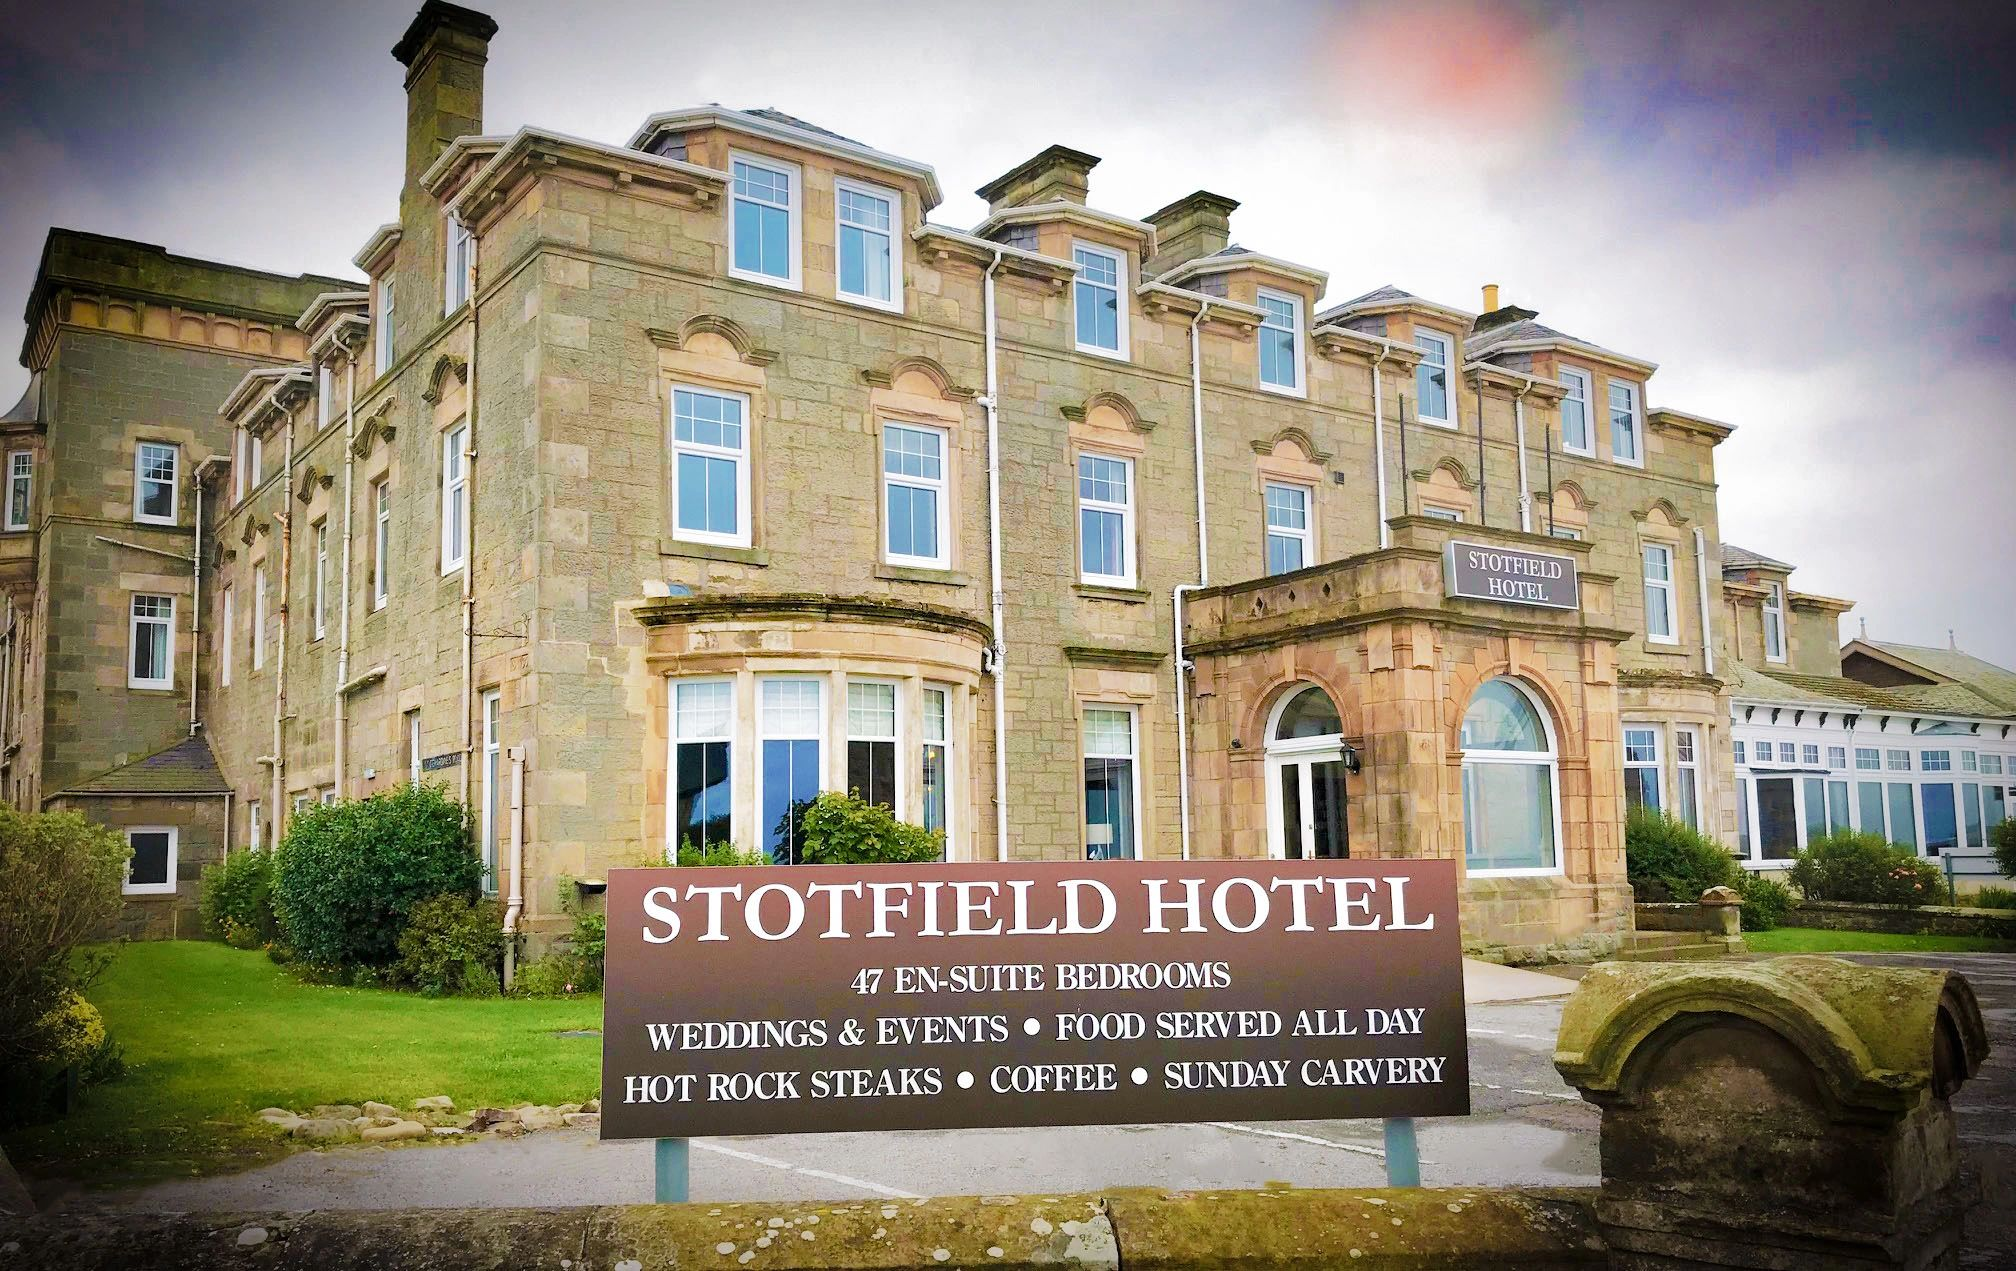 Stotfield Hotel, Exterior Image Stotfield Road Lossiemouth Moray Scotland IV31 6QS